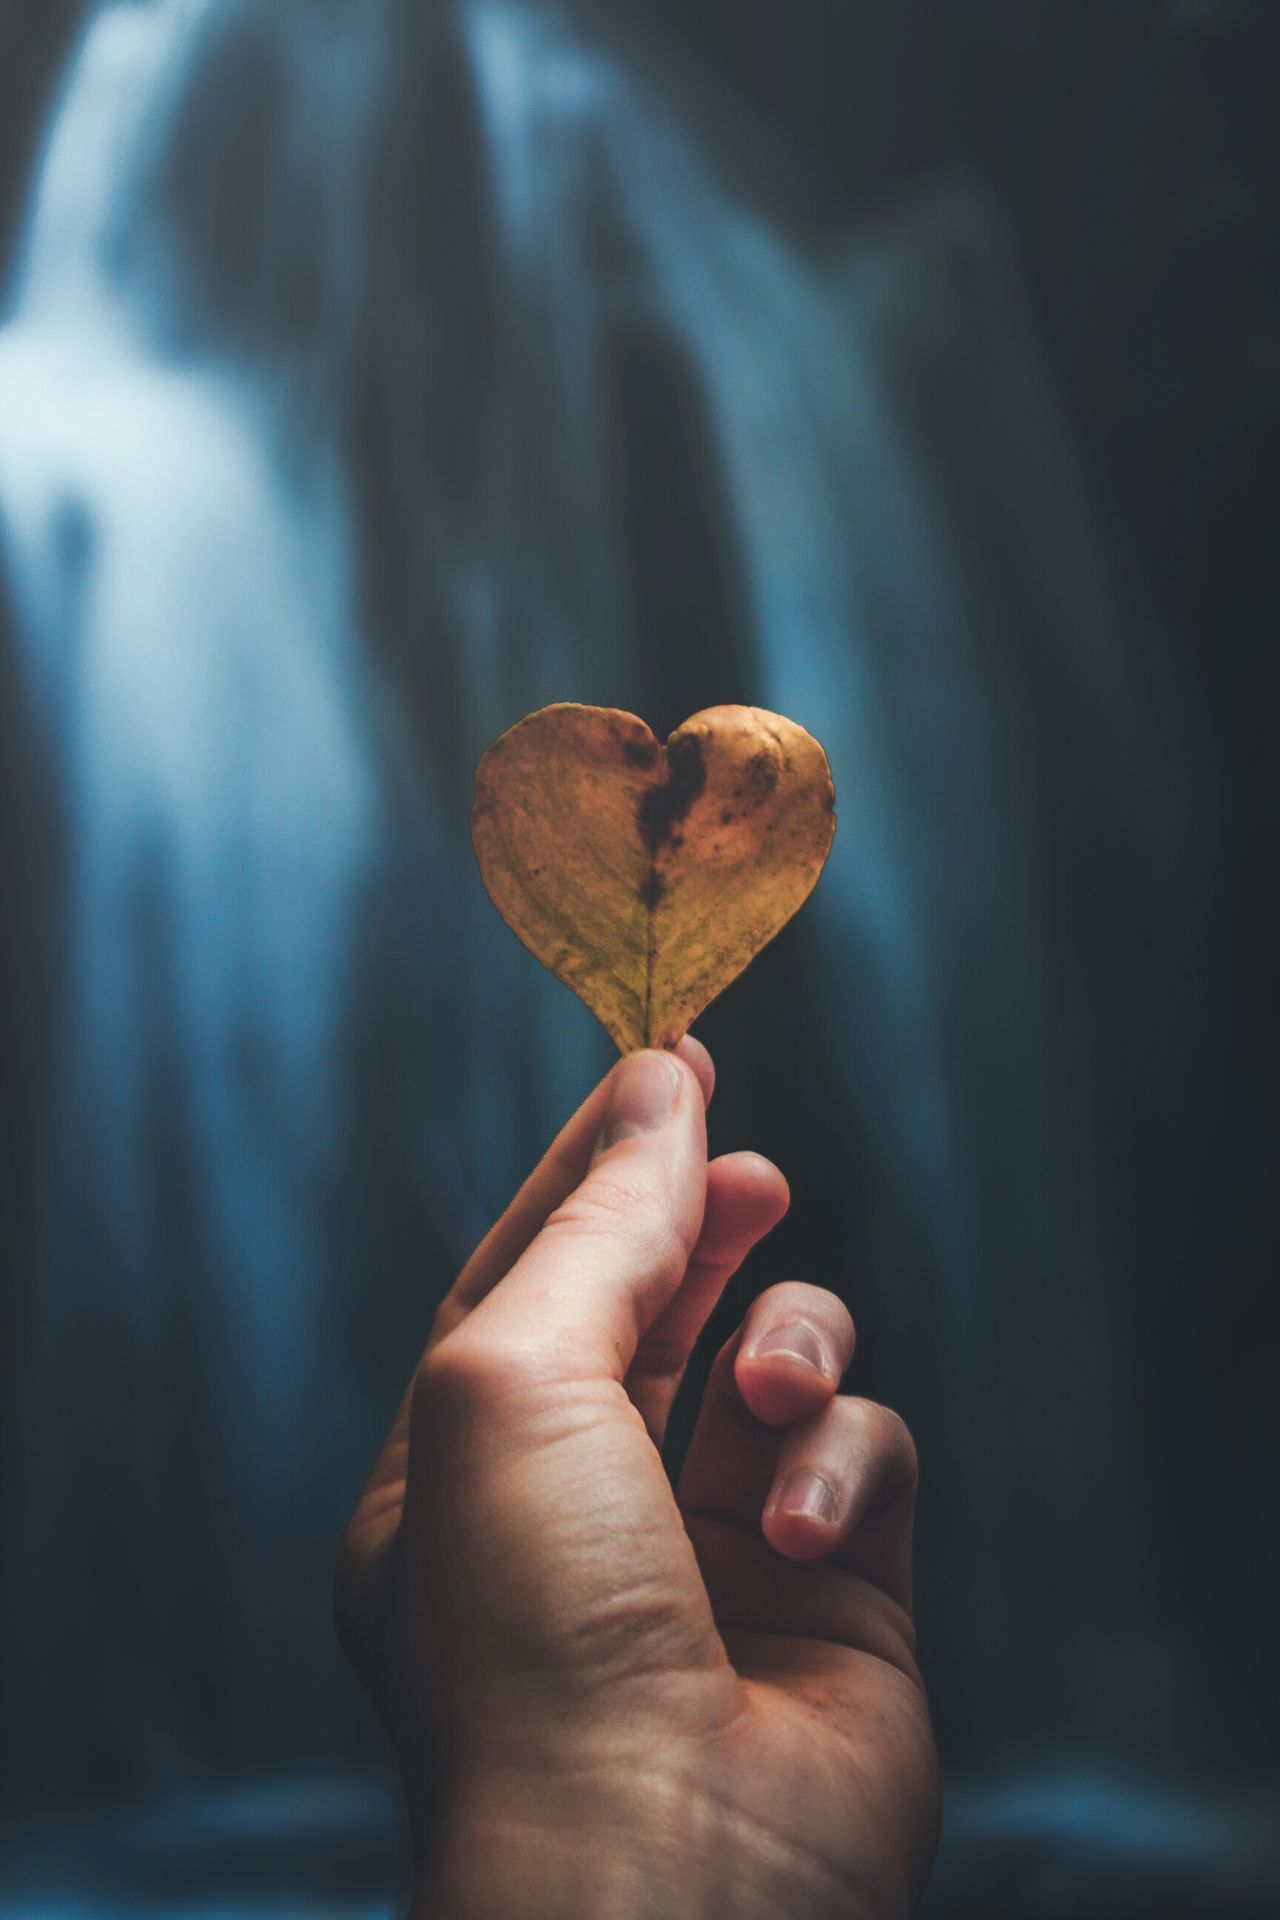 Human Hand Human Body Part Holding Human Finger One Person Close-up Fingernail Adult Day Young Adult Focus On Foreground Real People EyeEm Best Shots EyeEm Gallery Beautiful EyeEm Love Leaf Flower Autumn Nature Water Blue Moody The Great Outdoors - 2017 EyeEm Awards